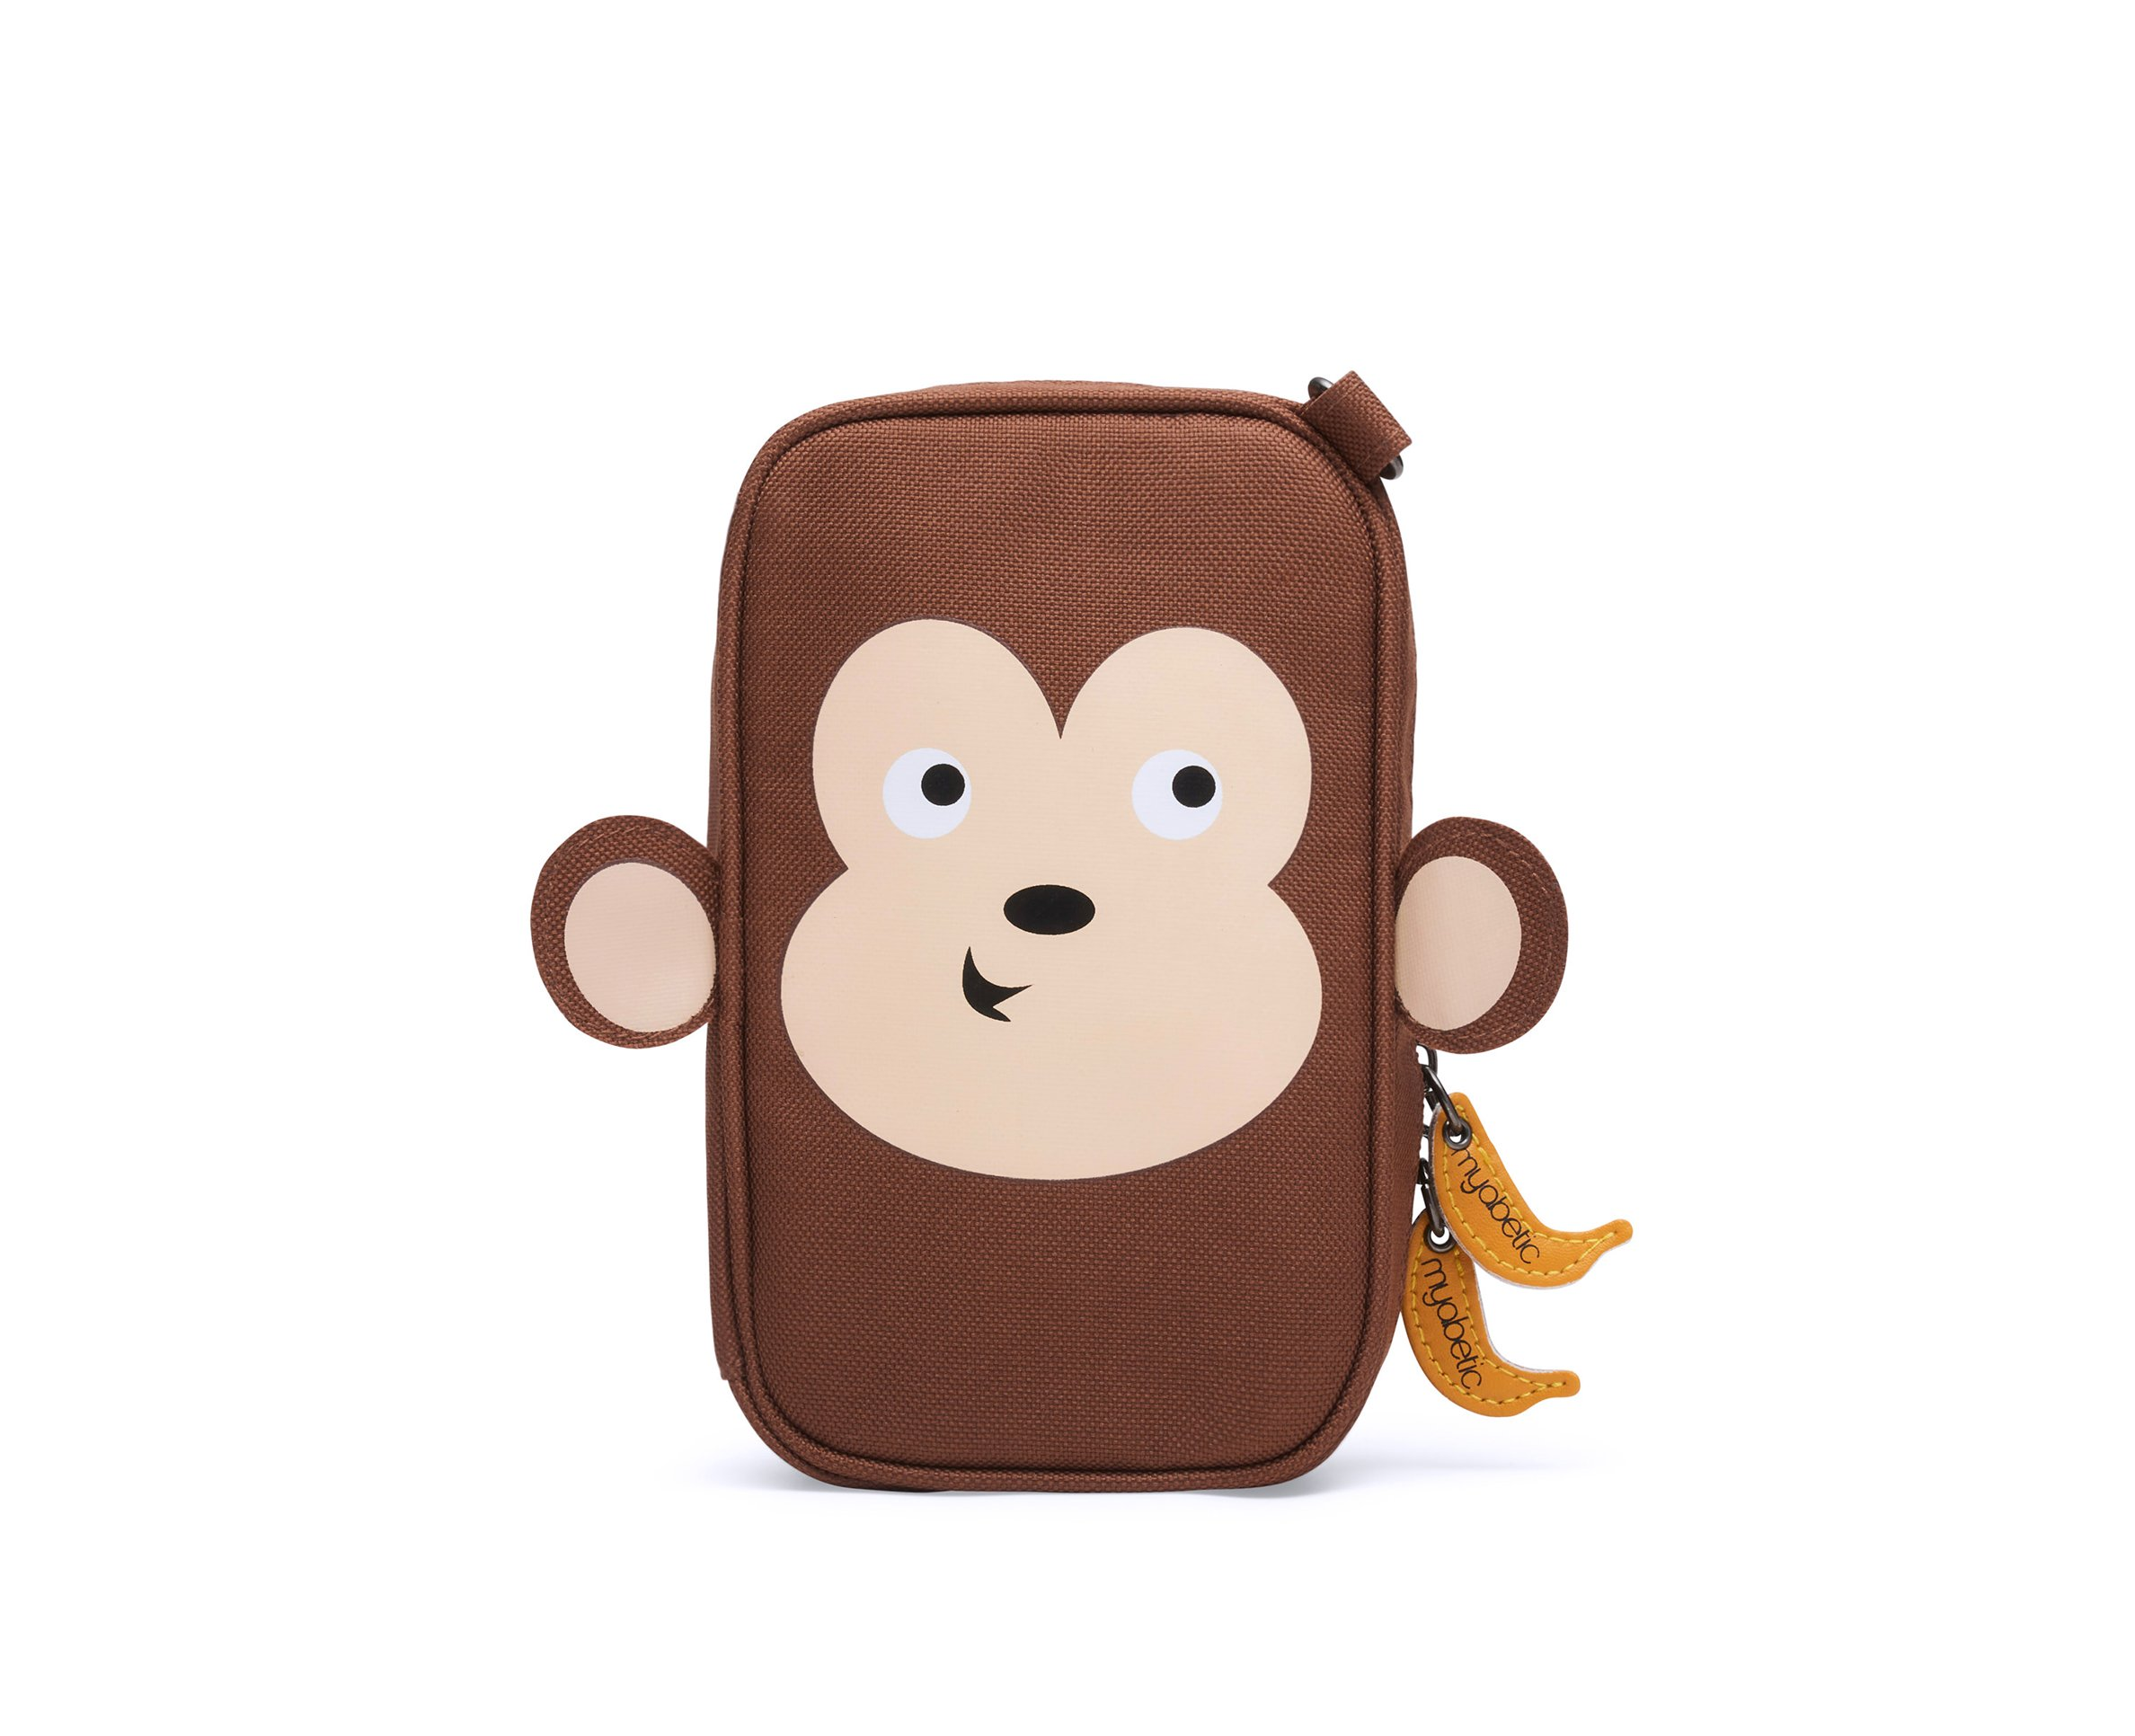 Myabetic Monkey Diabetes Case for Glucose Meter, Glucagon, Test Strips, Lancing Device, Includes Insulation